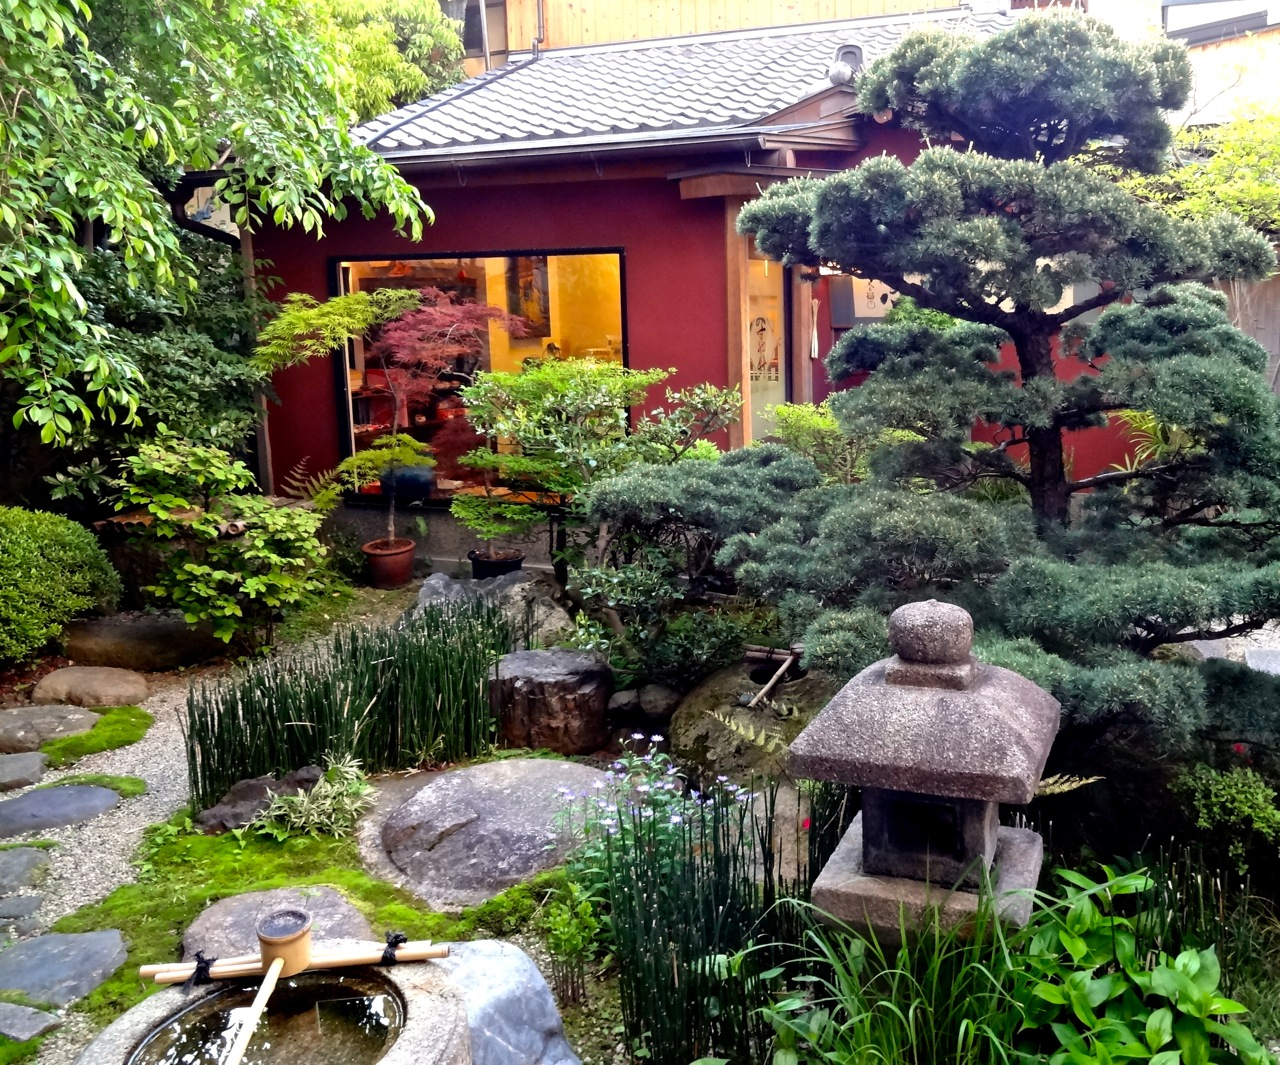 Japanese Garden Plants 102 Best Zen Gardens Images On Pinterest Zen Gardens Japanese